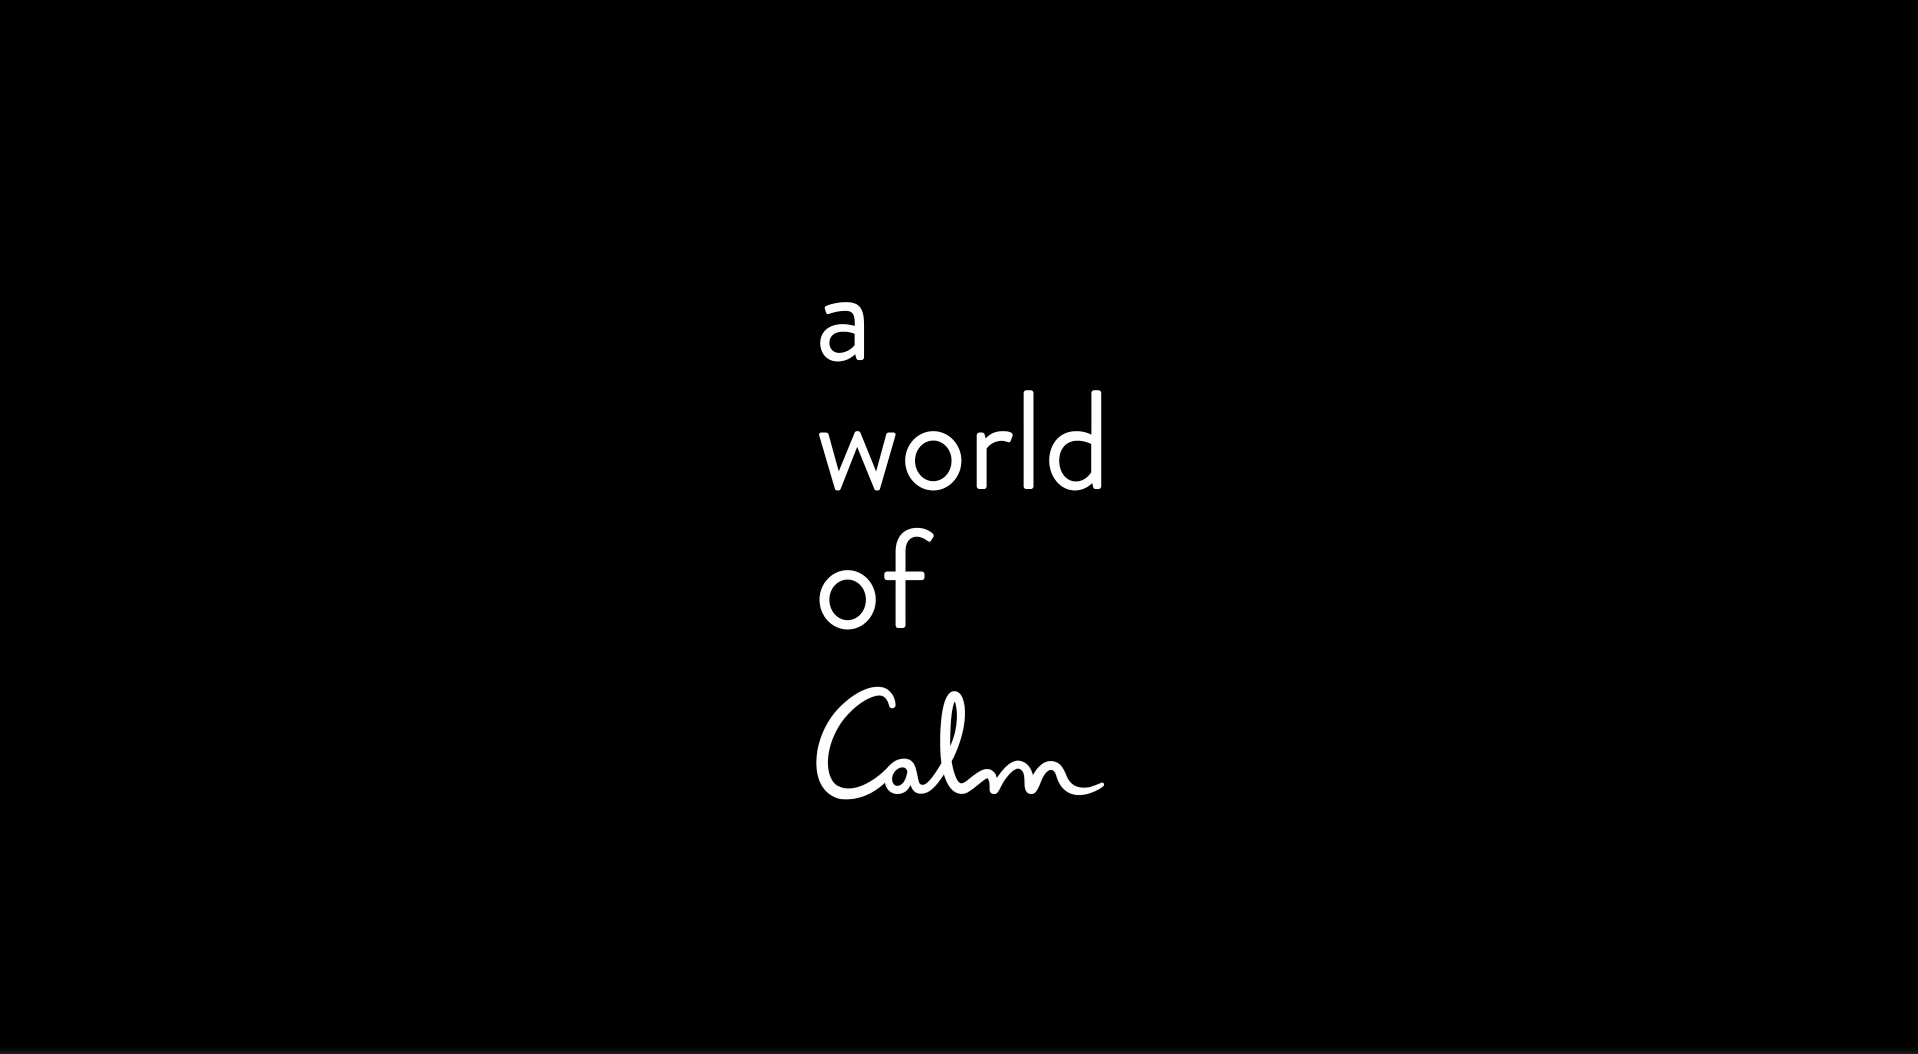 all3media international signs first collaboration with Nutopia, securing distribution to 'A World of Calm'